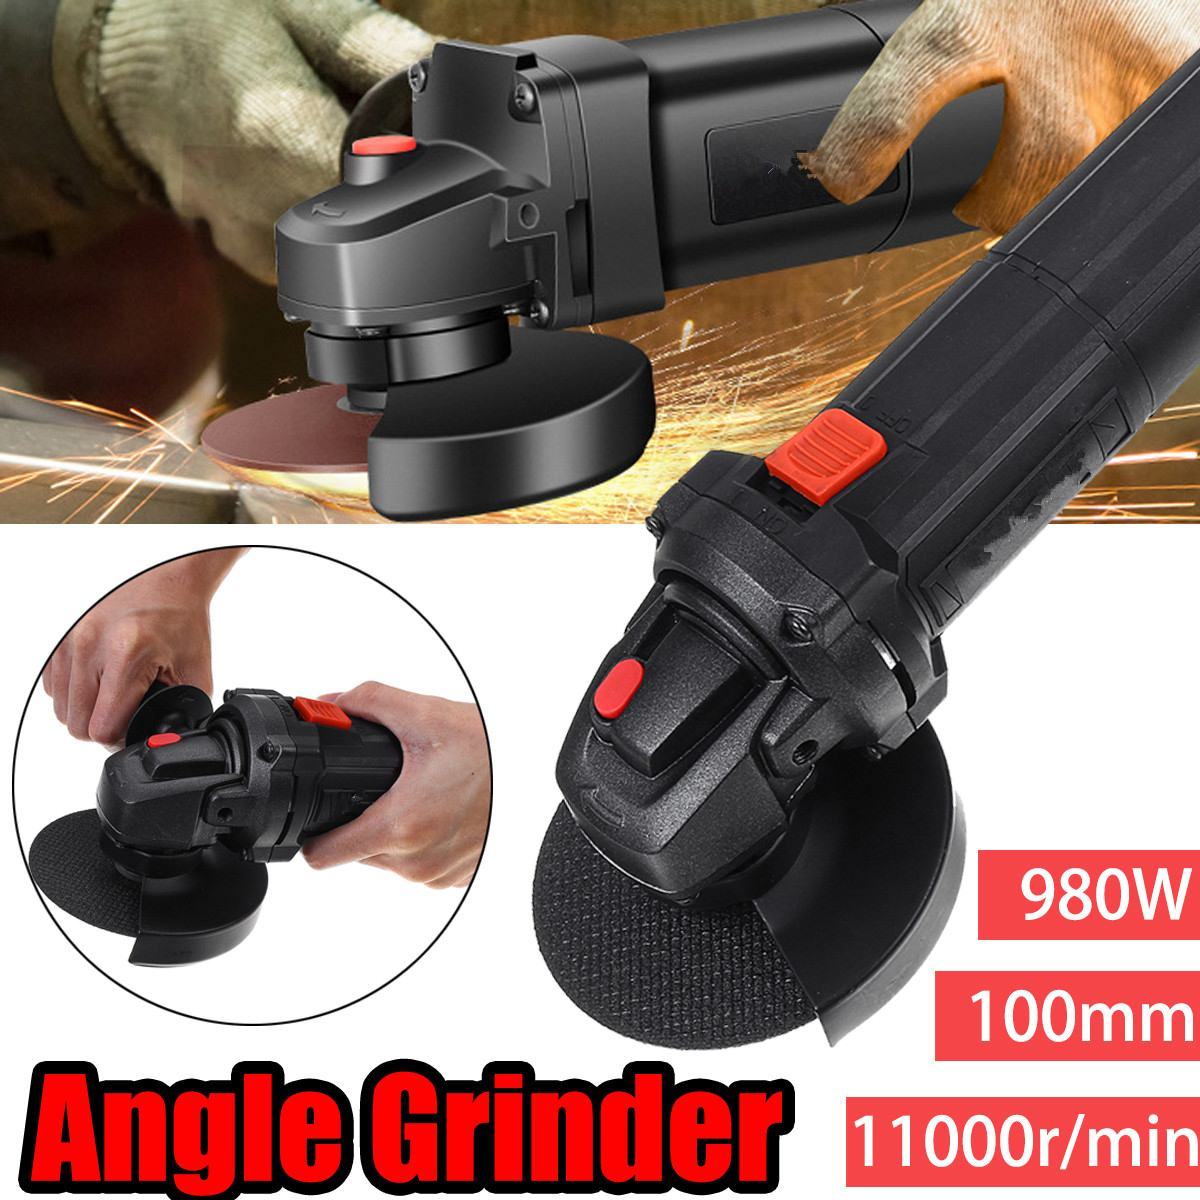 220V 980W Multifunction Angle Grinder Eectric Angle Grinding Metal Wood Cutting And Grinding Machine 11000RPM Woodworking Tools